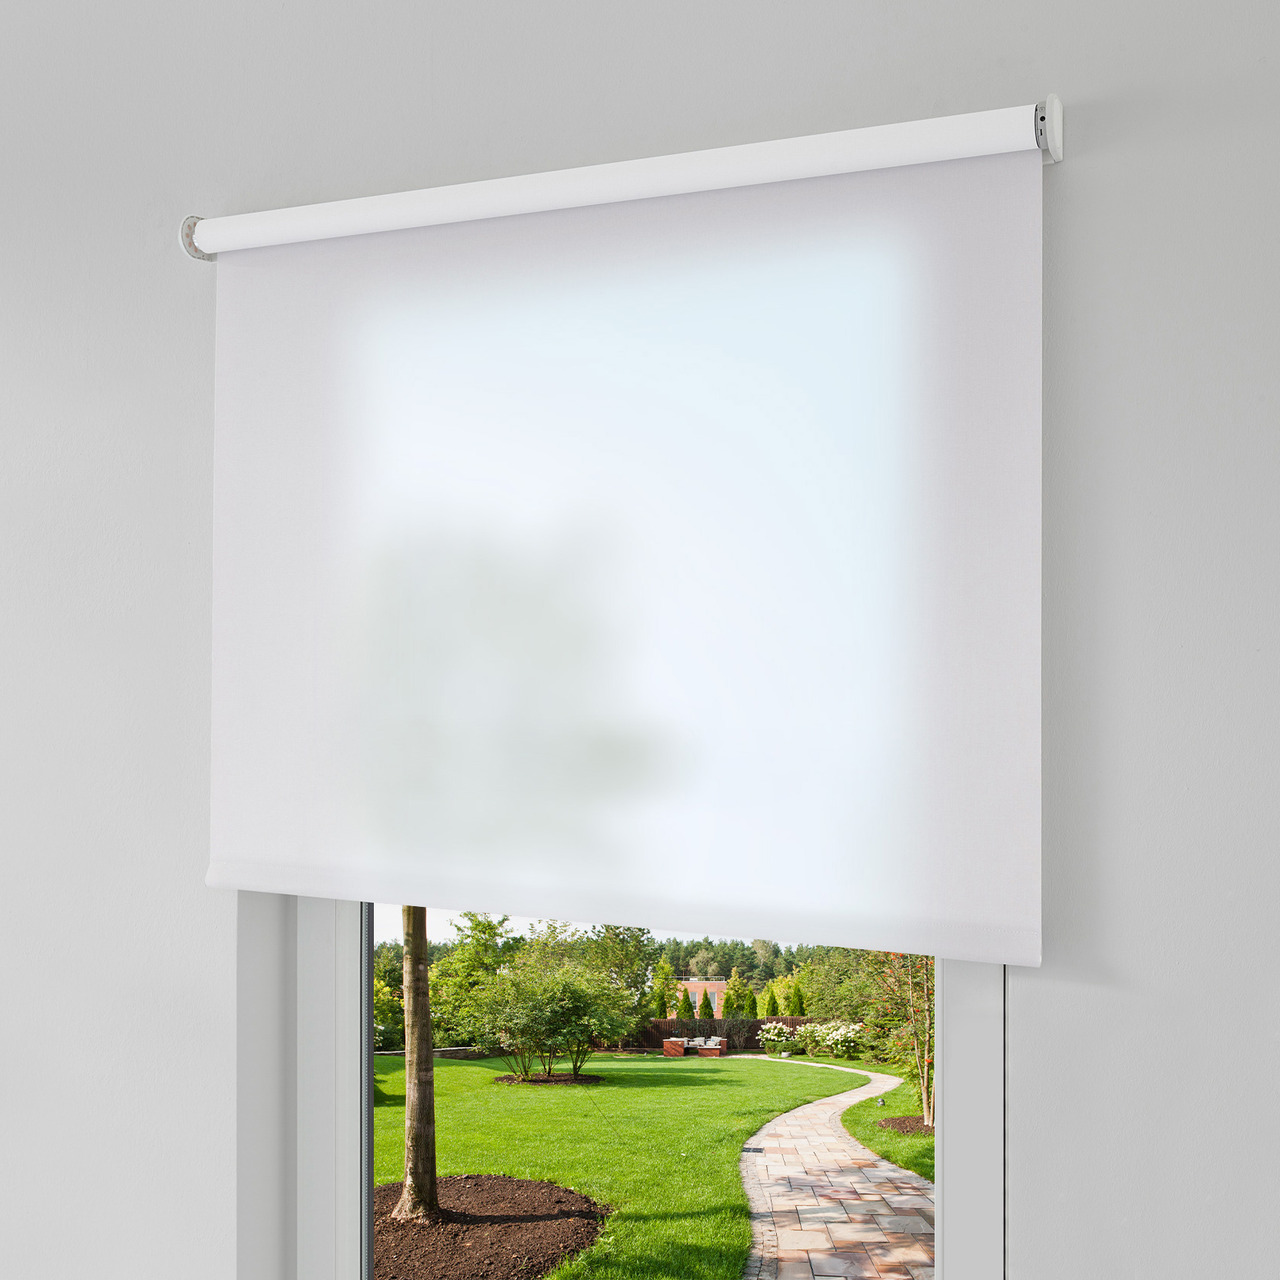 Erfal Smartcontrol Rollo by Homematic IP- 90 x 160 cm (B x H)- halbtransparent tageslicht weiss